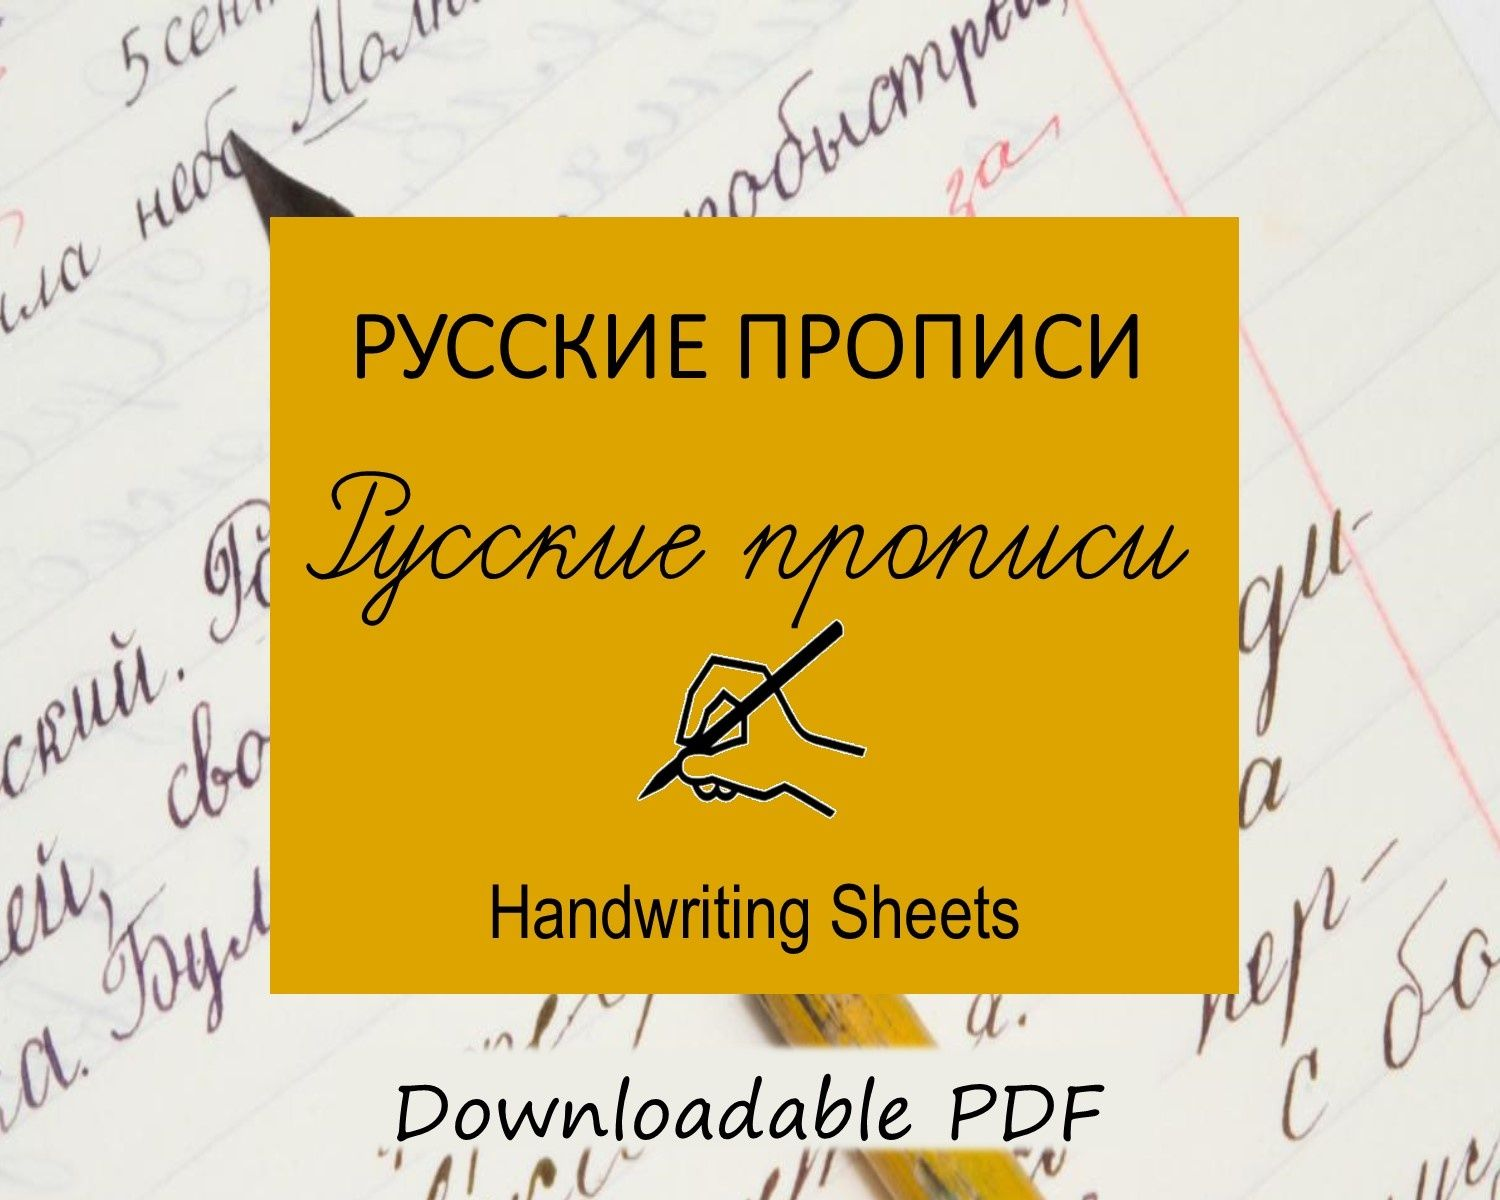 Russian Handwriting Sheets